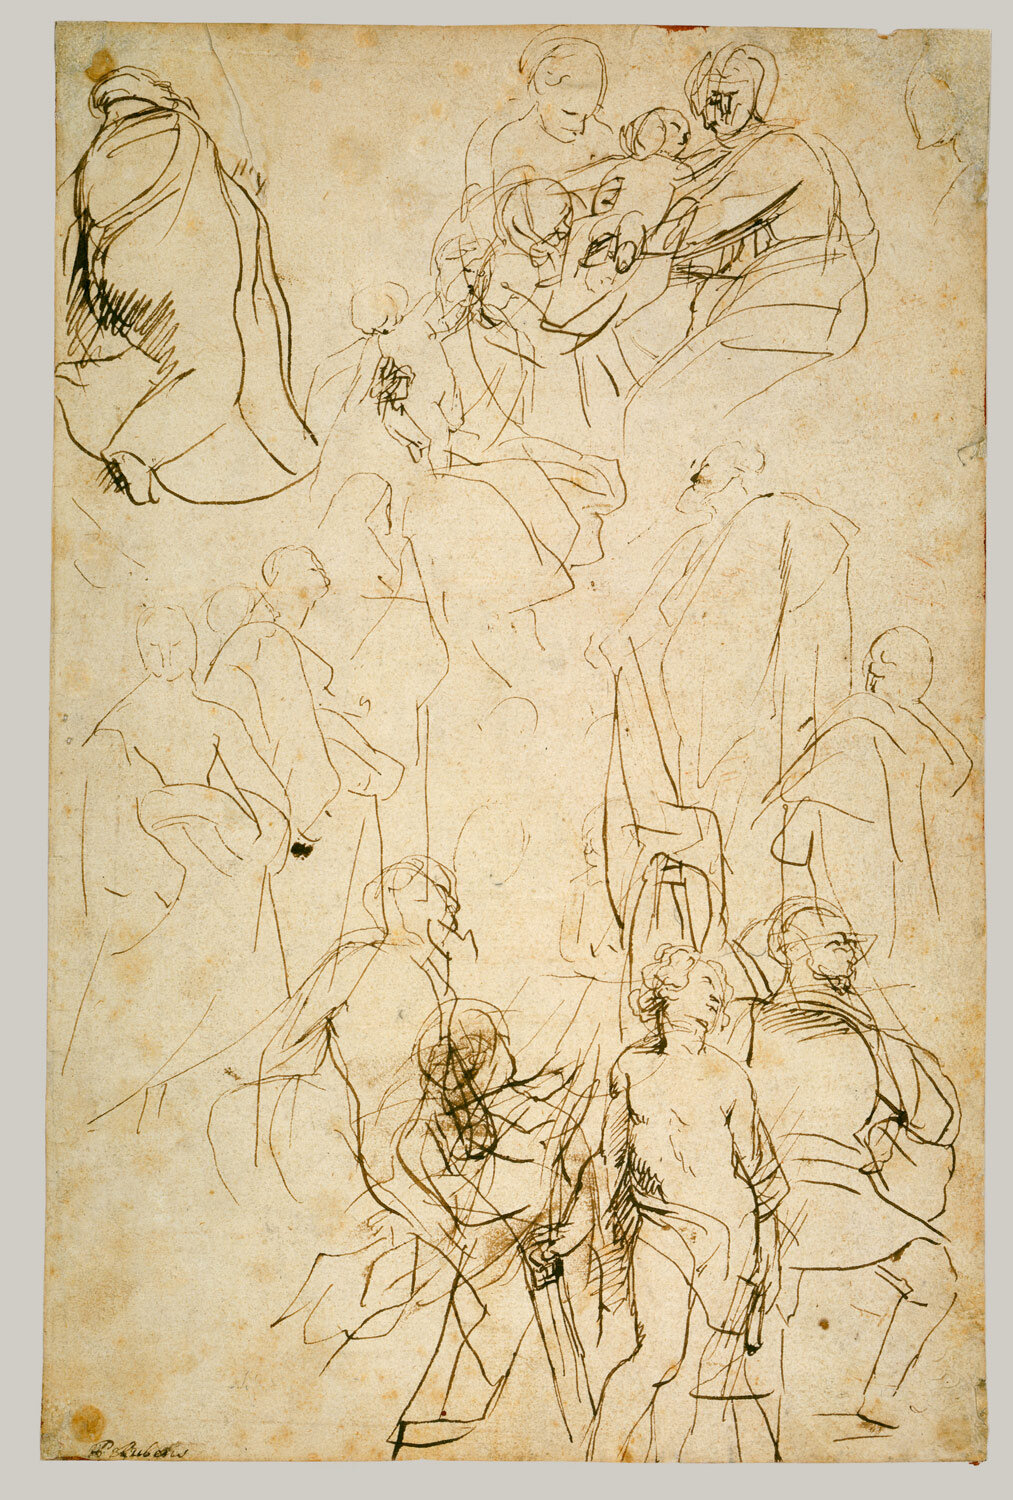 The Virgin Adored by Saints (recto), pen and brown ink, Peter Paul Rubens (1577-1640), (Image courtesy of the Metropolitan Museum of Art, New York)